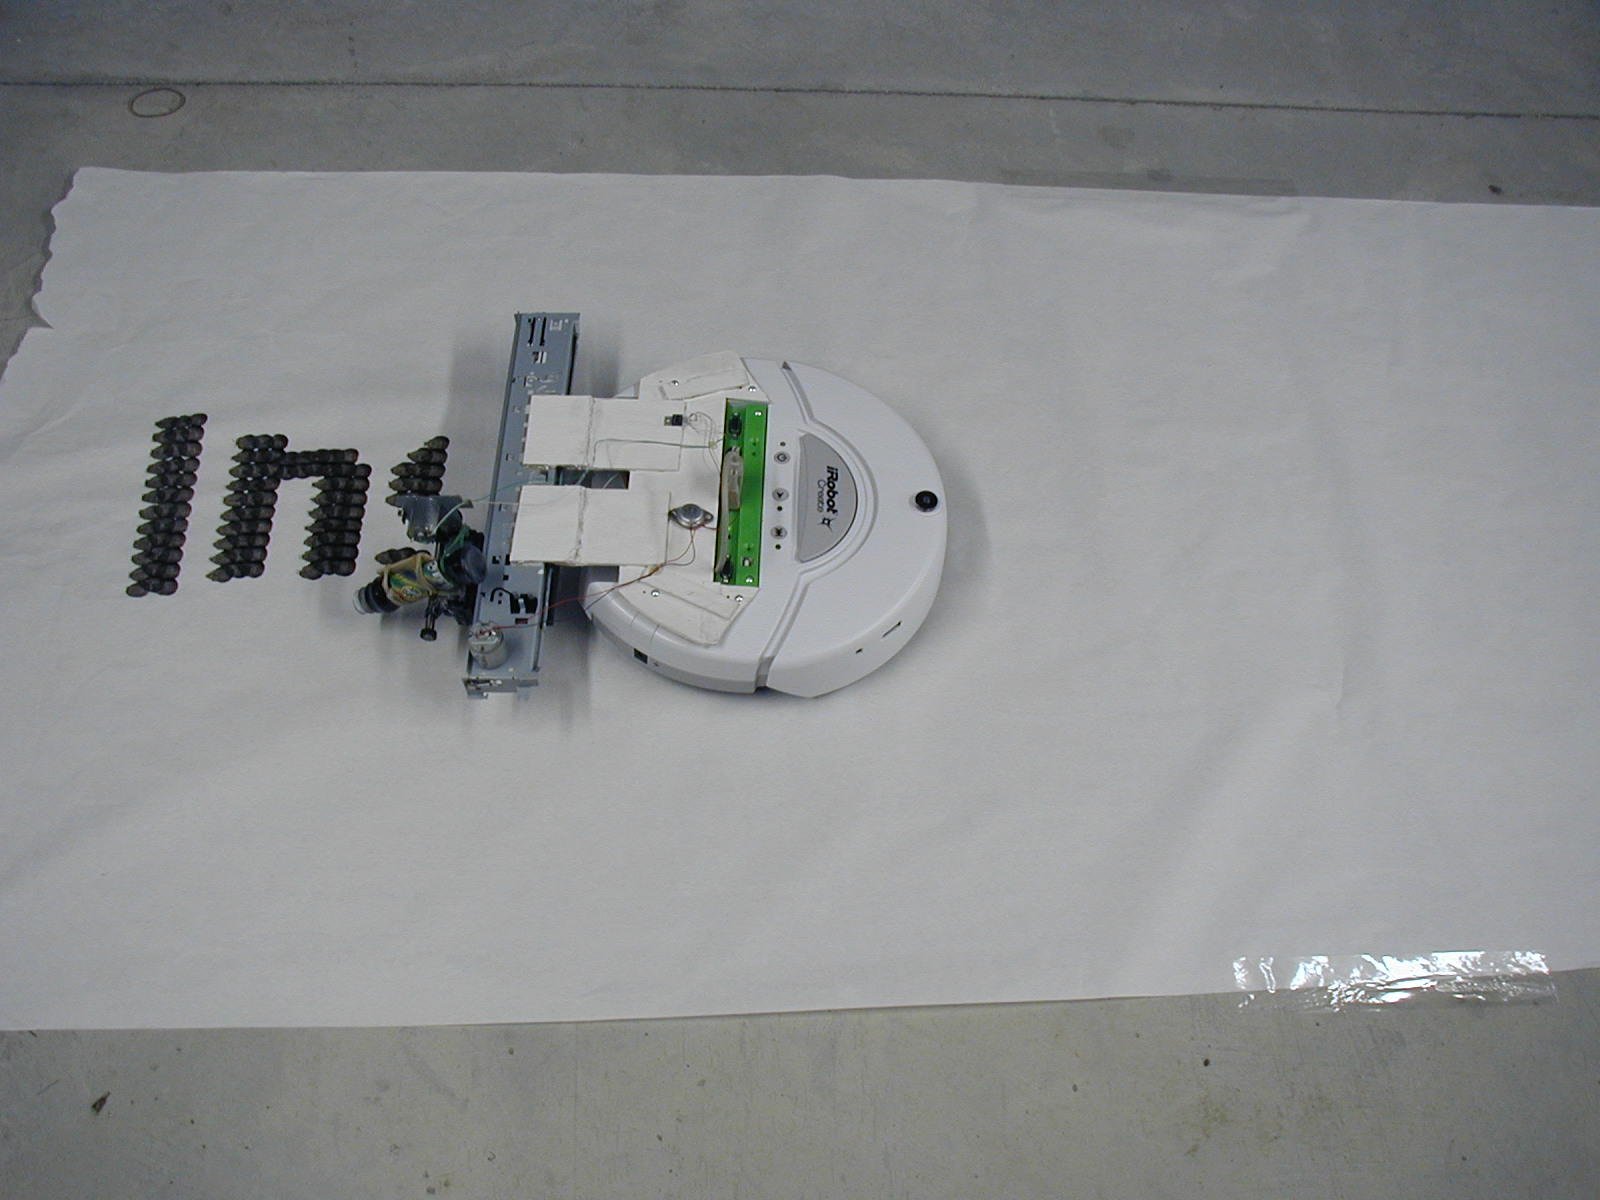 PosterBot: Make a Marker-Writing Robot out of an Old Inket printer and an iRobot Create